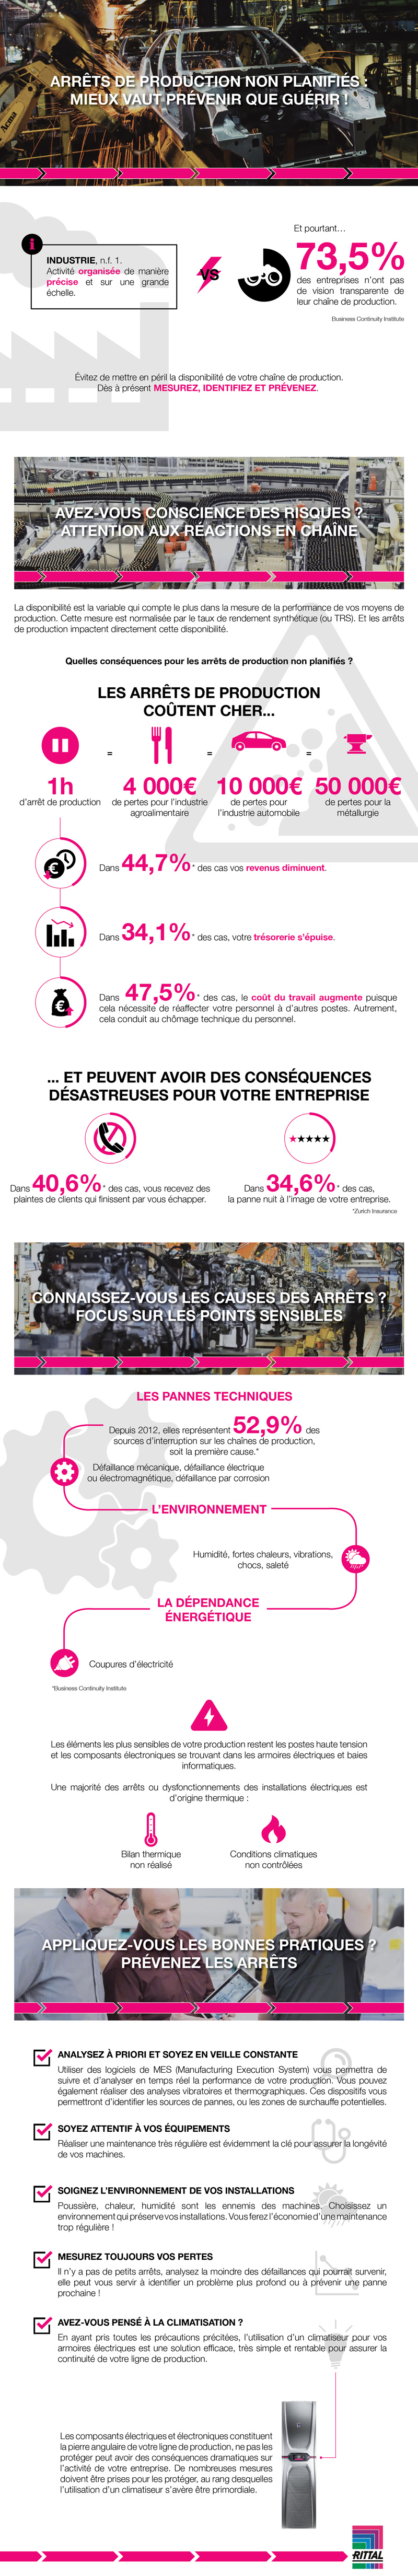 160407-rittal-infographie-IE-800px.jpg